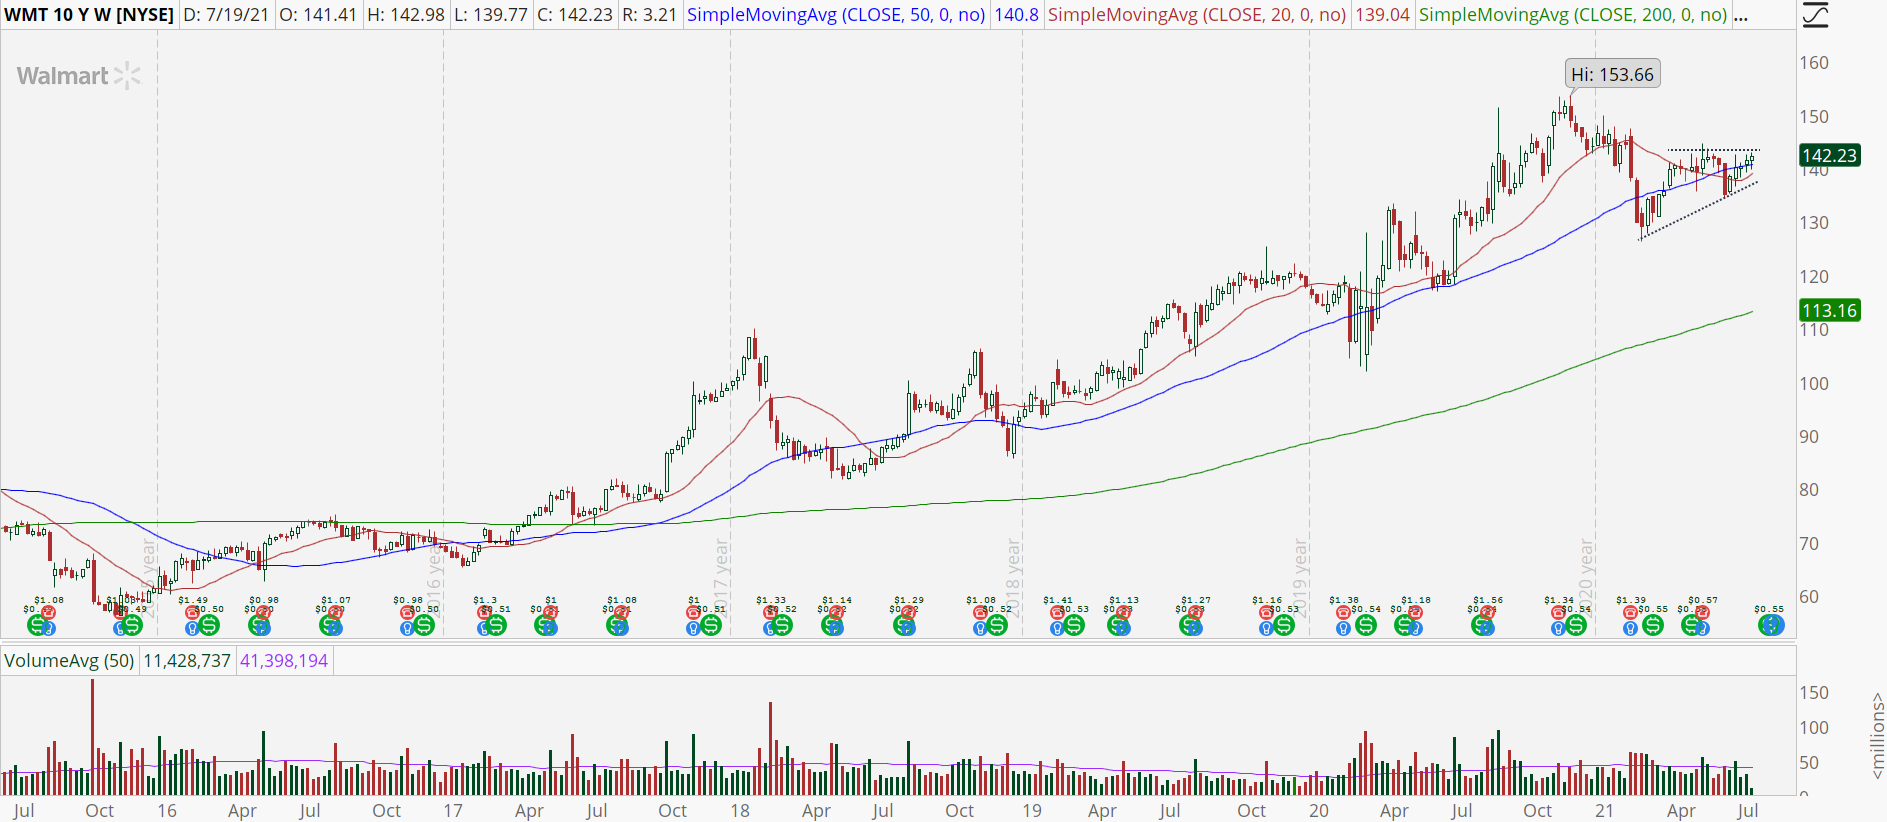 Walmart (WMT) stock weekly chart with looming breakout